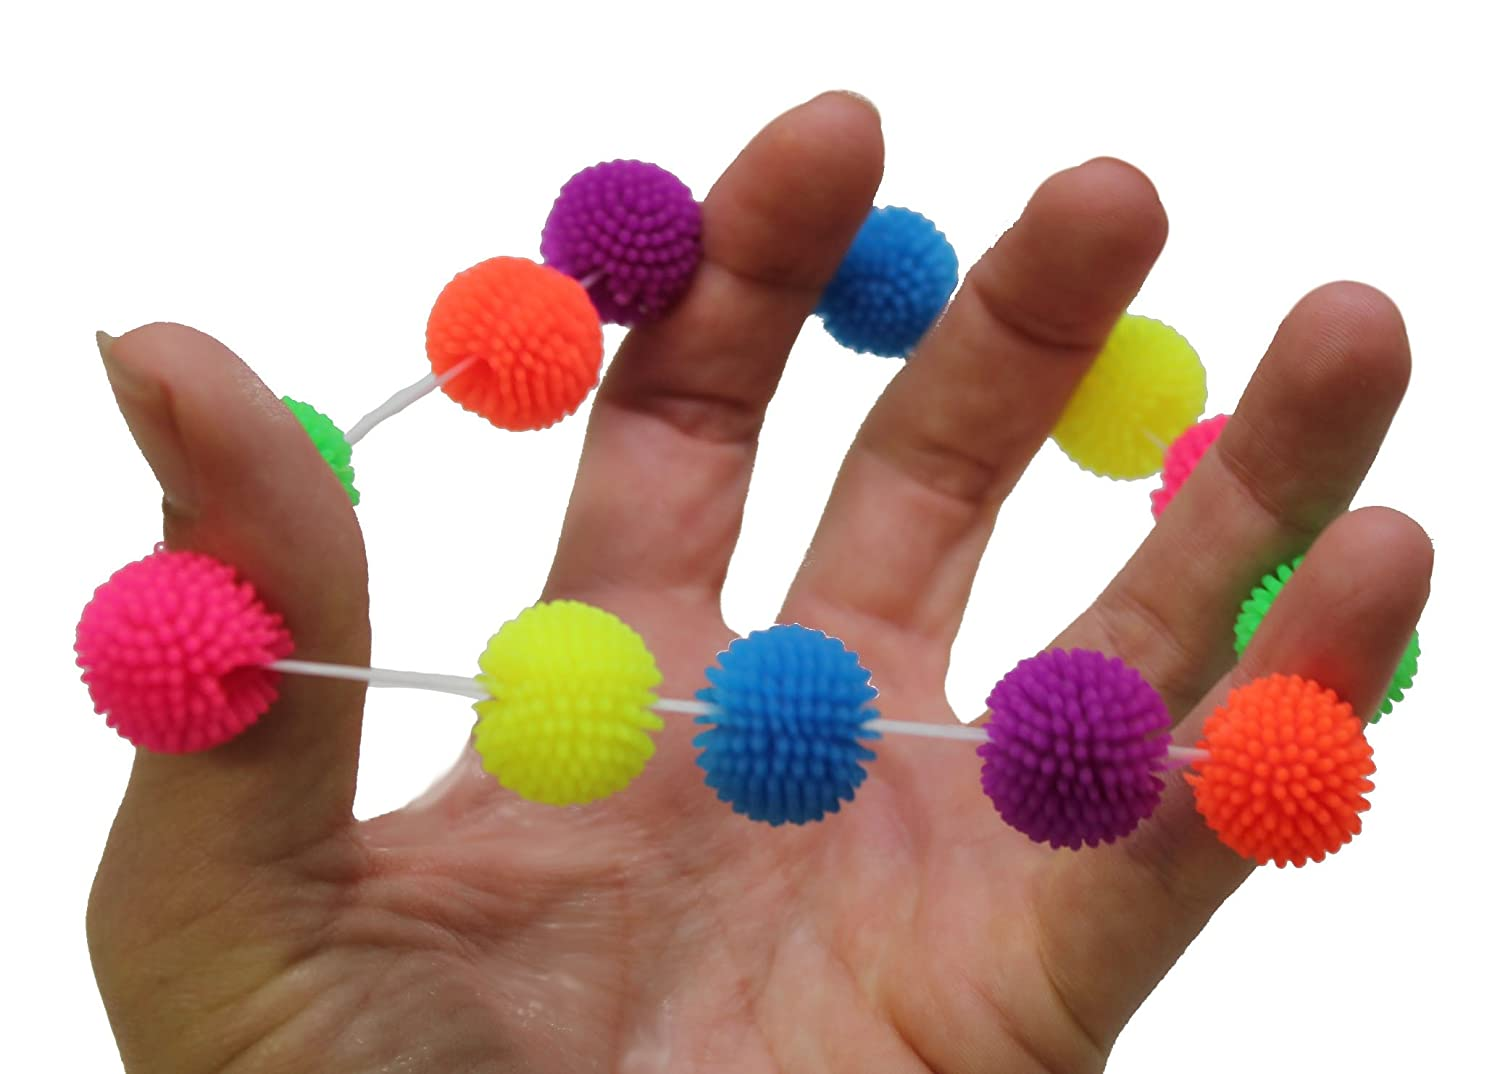 Curious Minds Busy Bags Mini Pom Puffer Hedge Ball Fidget Bracelet Sensory Fidget Toy for Students Adults and Children Office Calming Toy